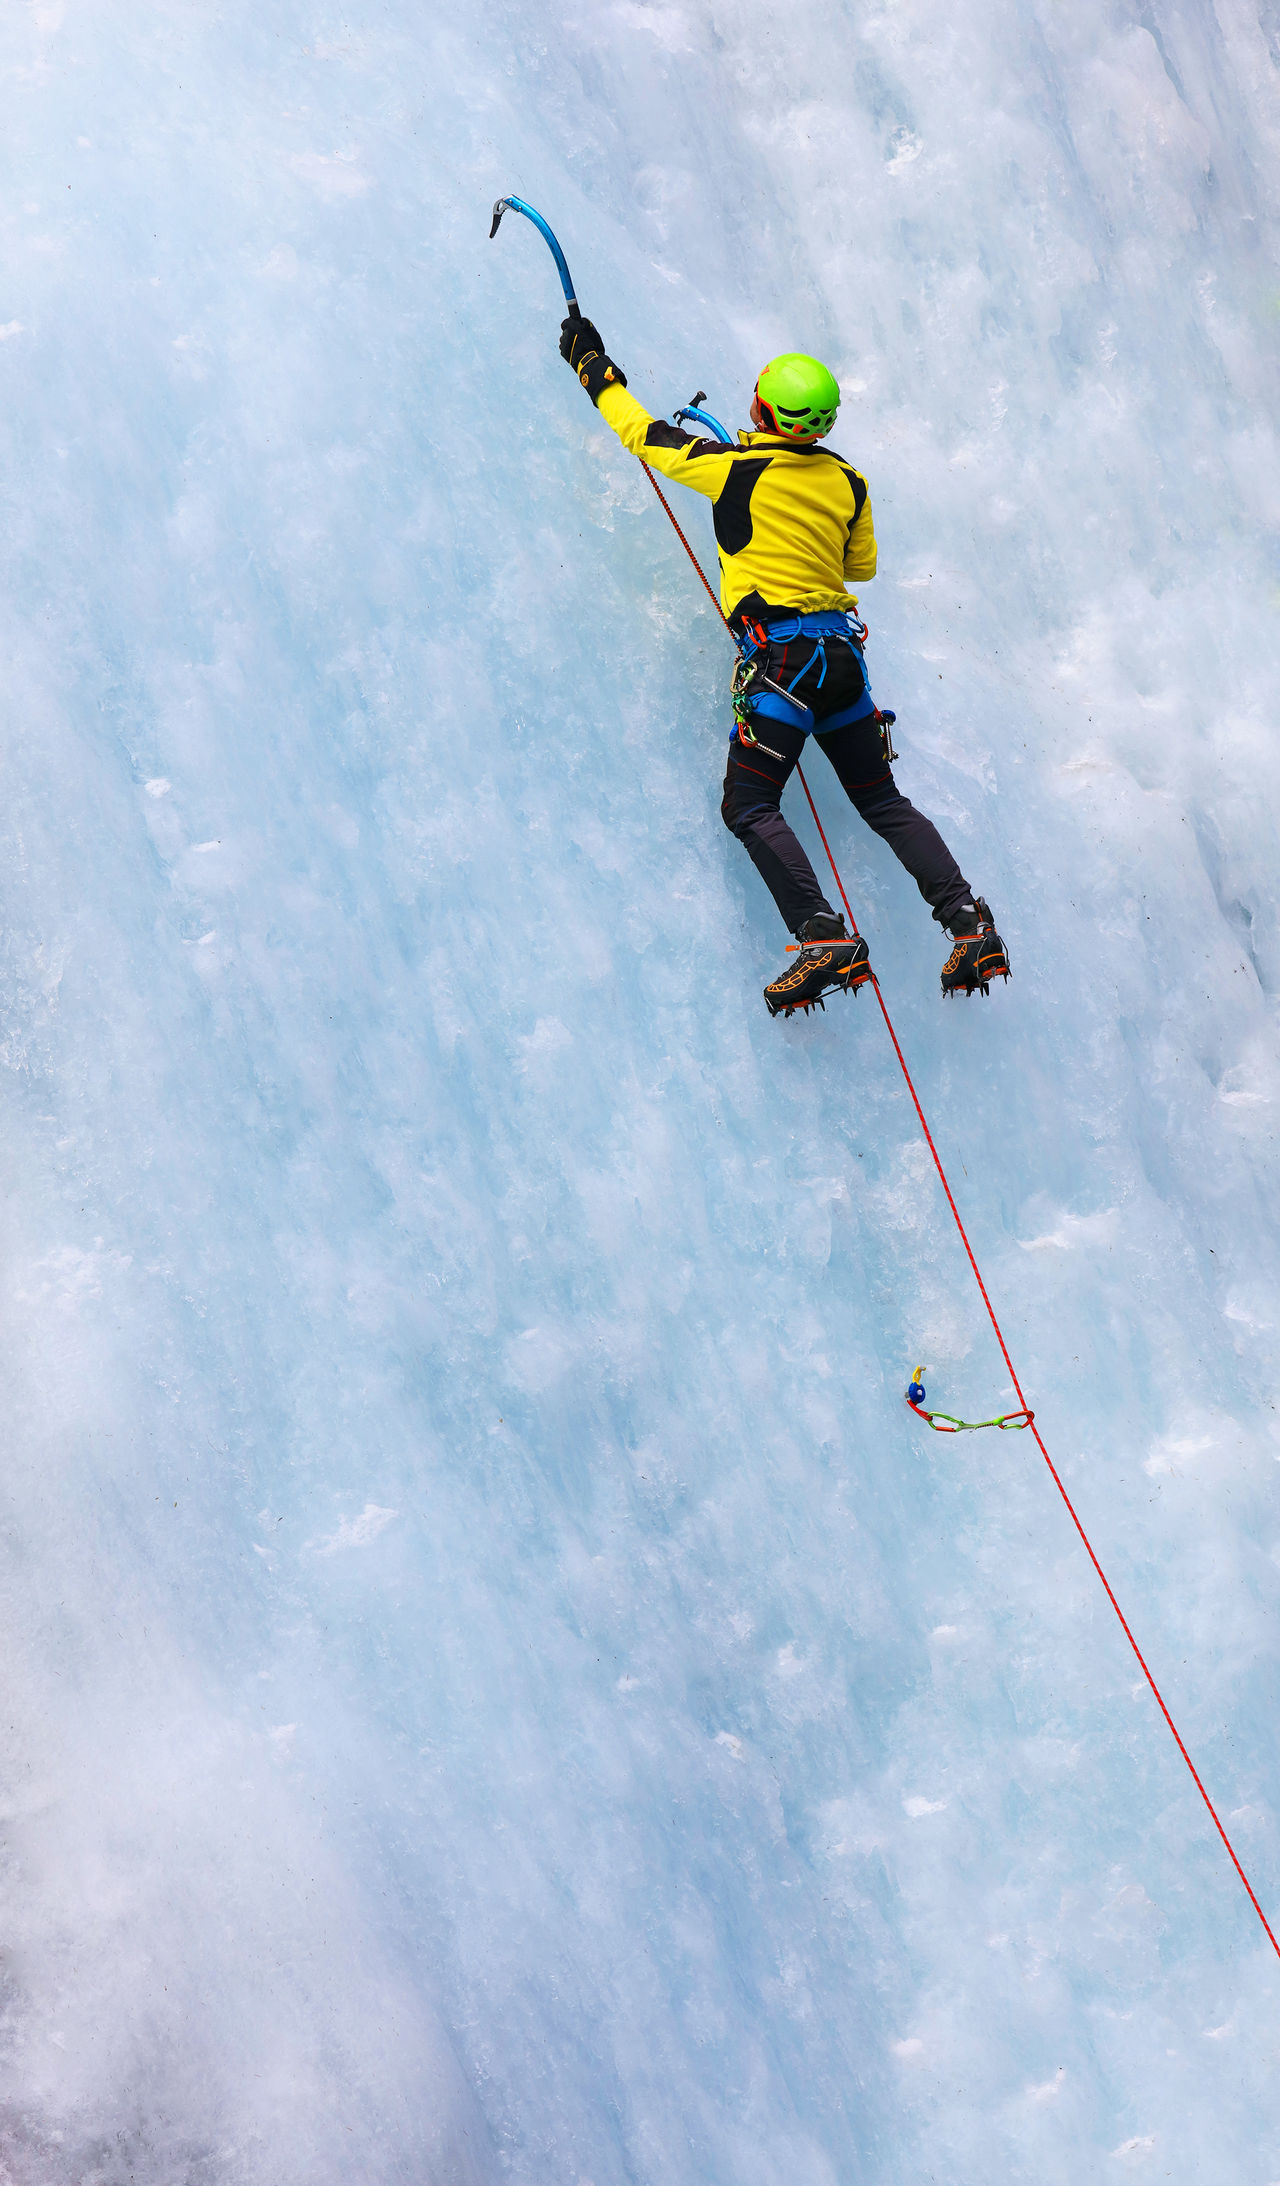 Adrenaline Adrenaline Junkie Equipment Extreme Extreme Sports Ice Axe Ice Climber Ice Climbing Sport Sports Photography Vertical